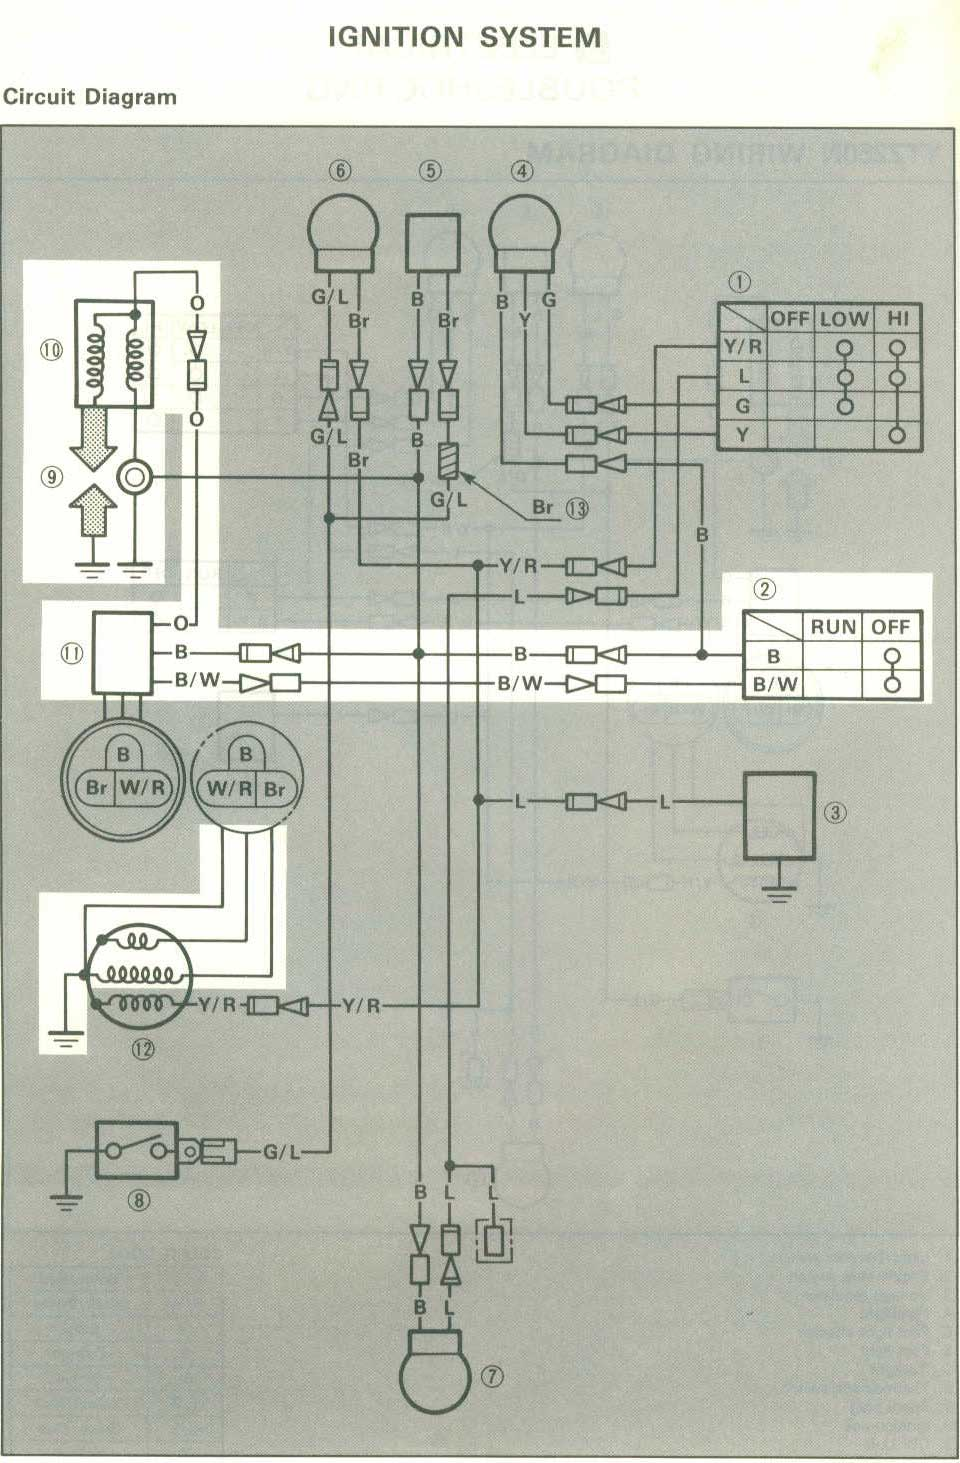 3 wheeler world tech help yamaha wiring diagrams Yamaha Wiring Harness Diagram